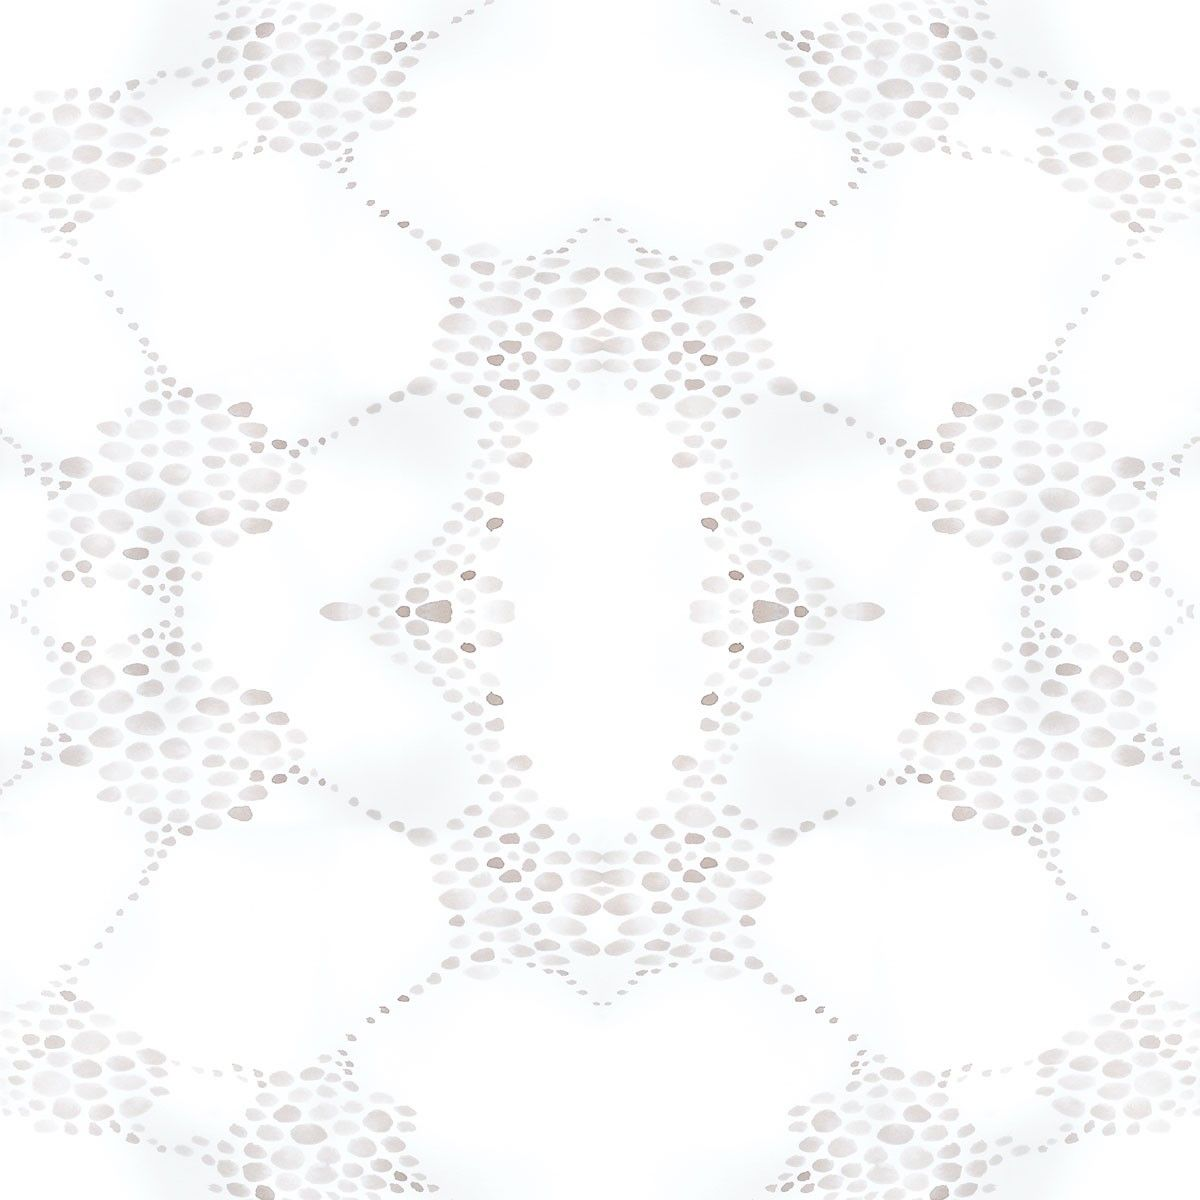 Water Lace - Artisanal Wallpaper from The Wallpaper Collective